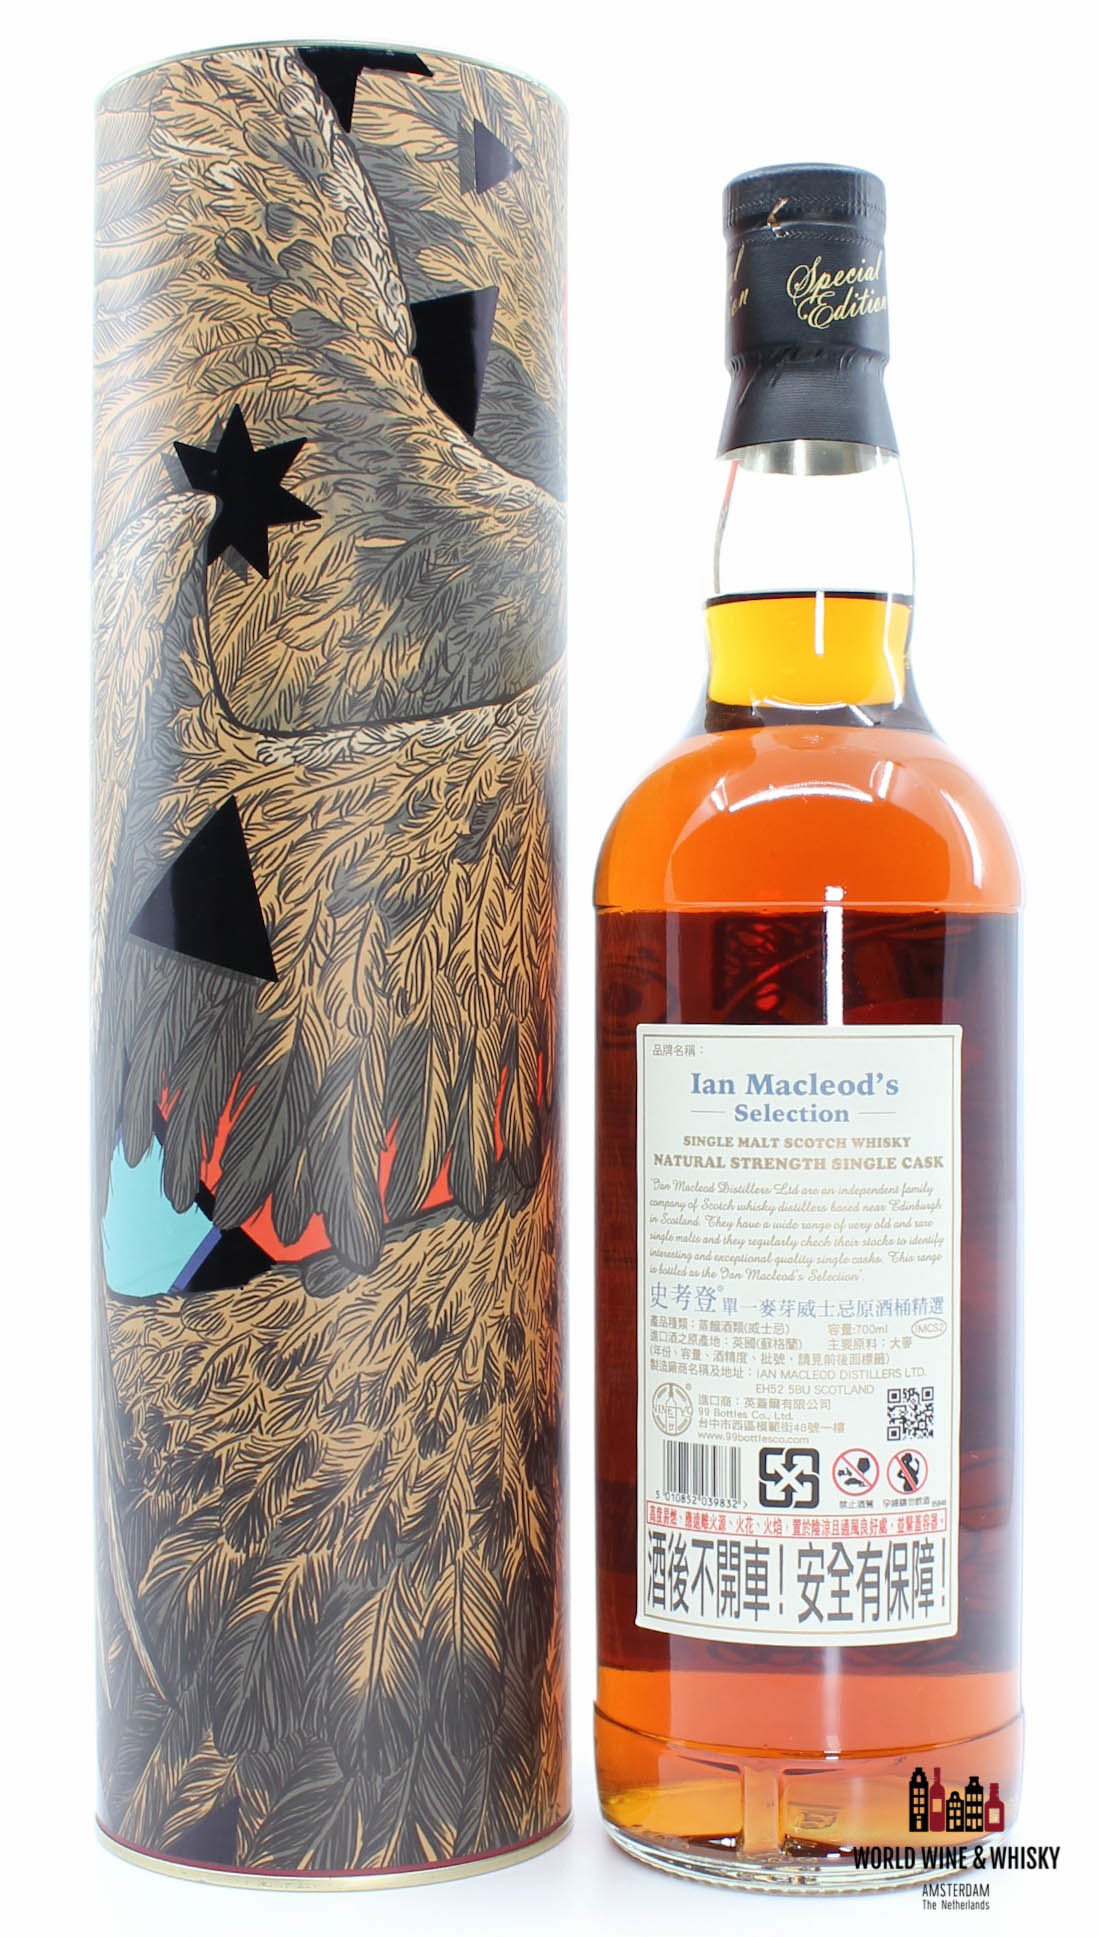 Dalmore Dalmore 2009 2018 - Ian MacLeod's Selection - Cask 167 - Connoisseur Society 59.3% (1 of 299)